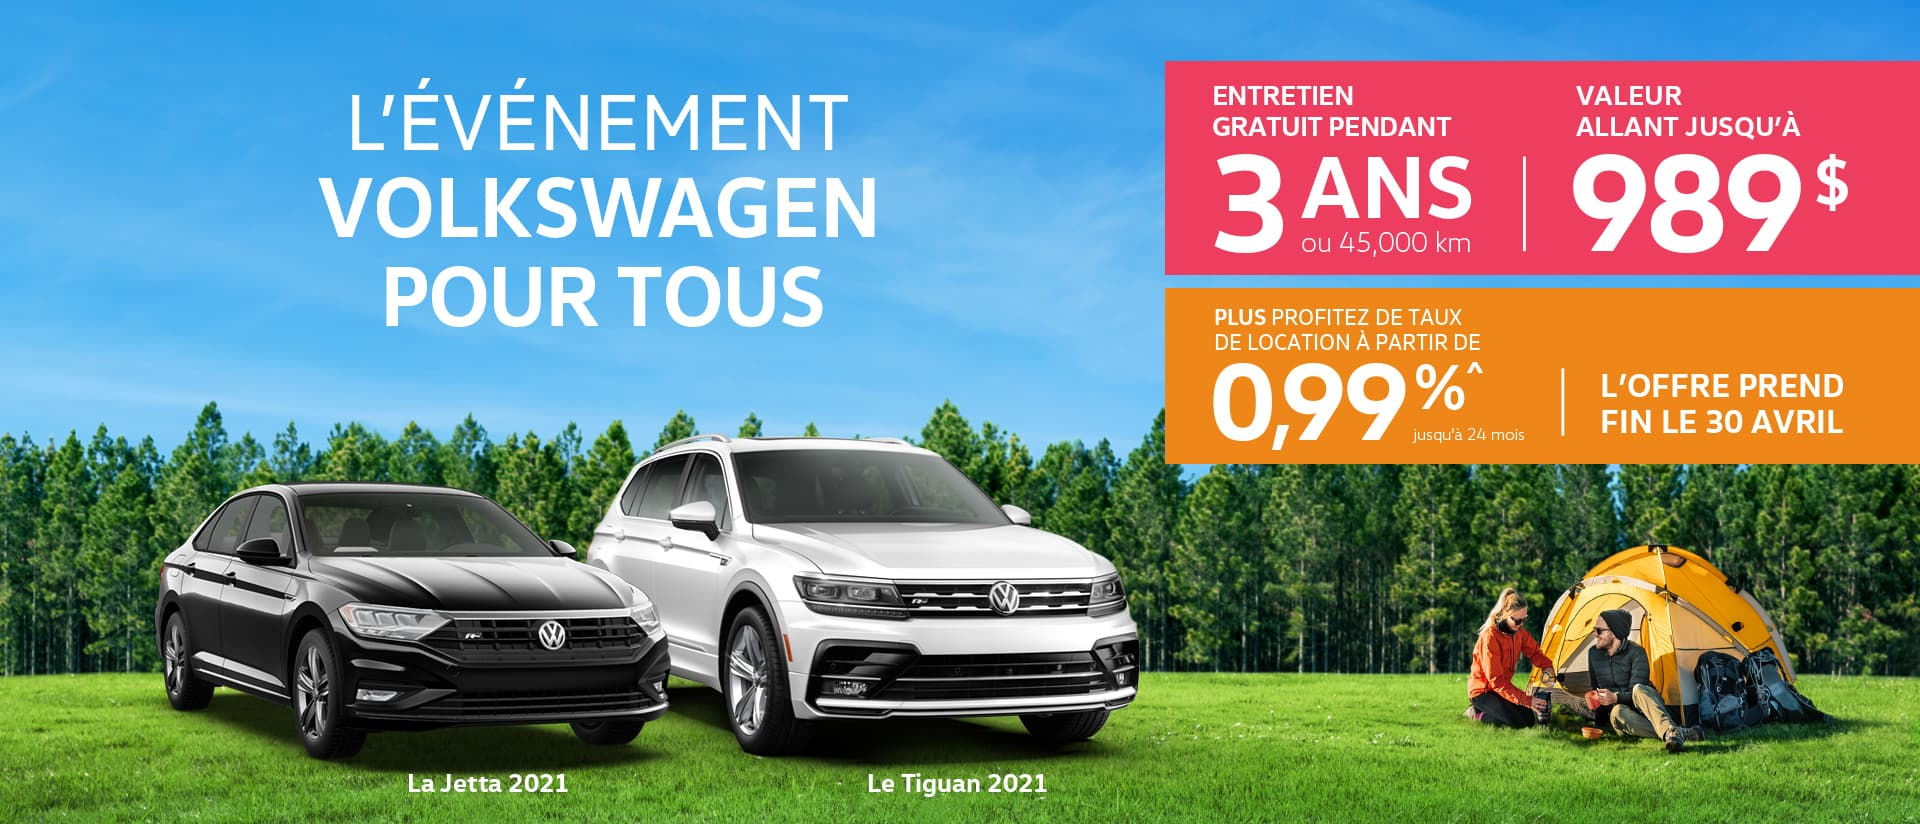 Vw21 April Offer Qc Fr